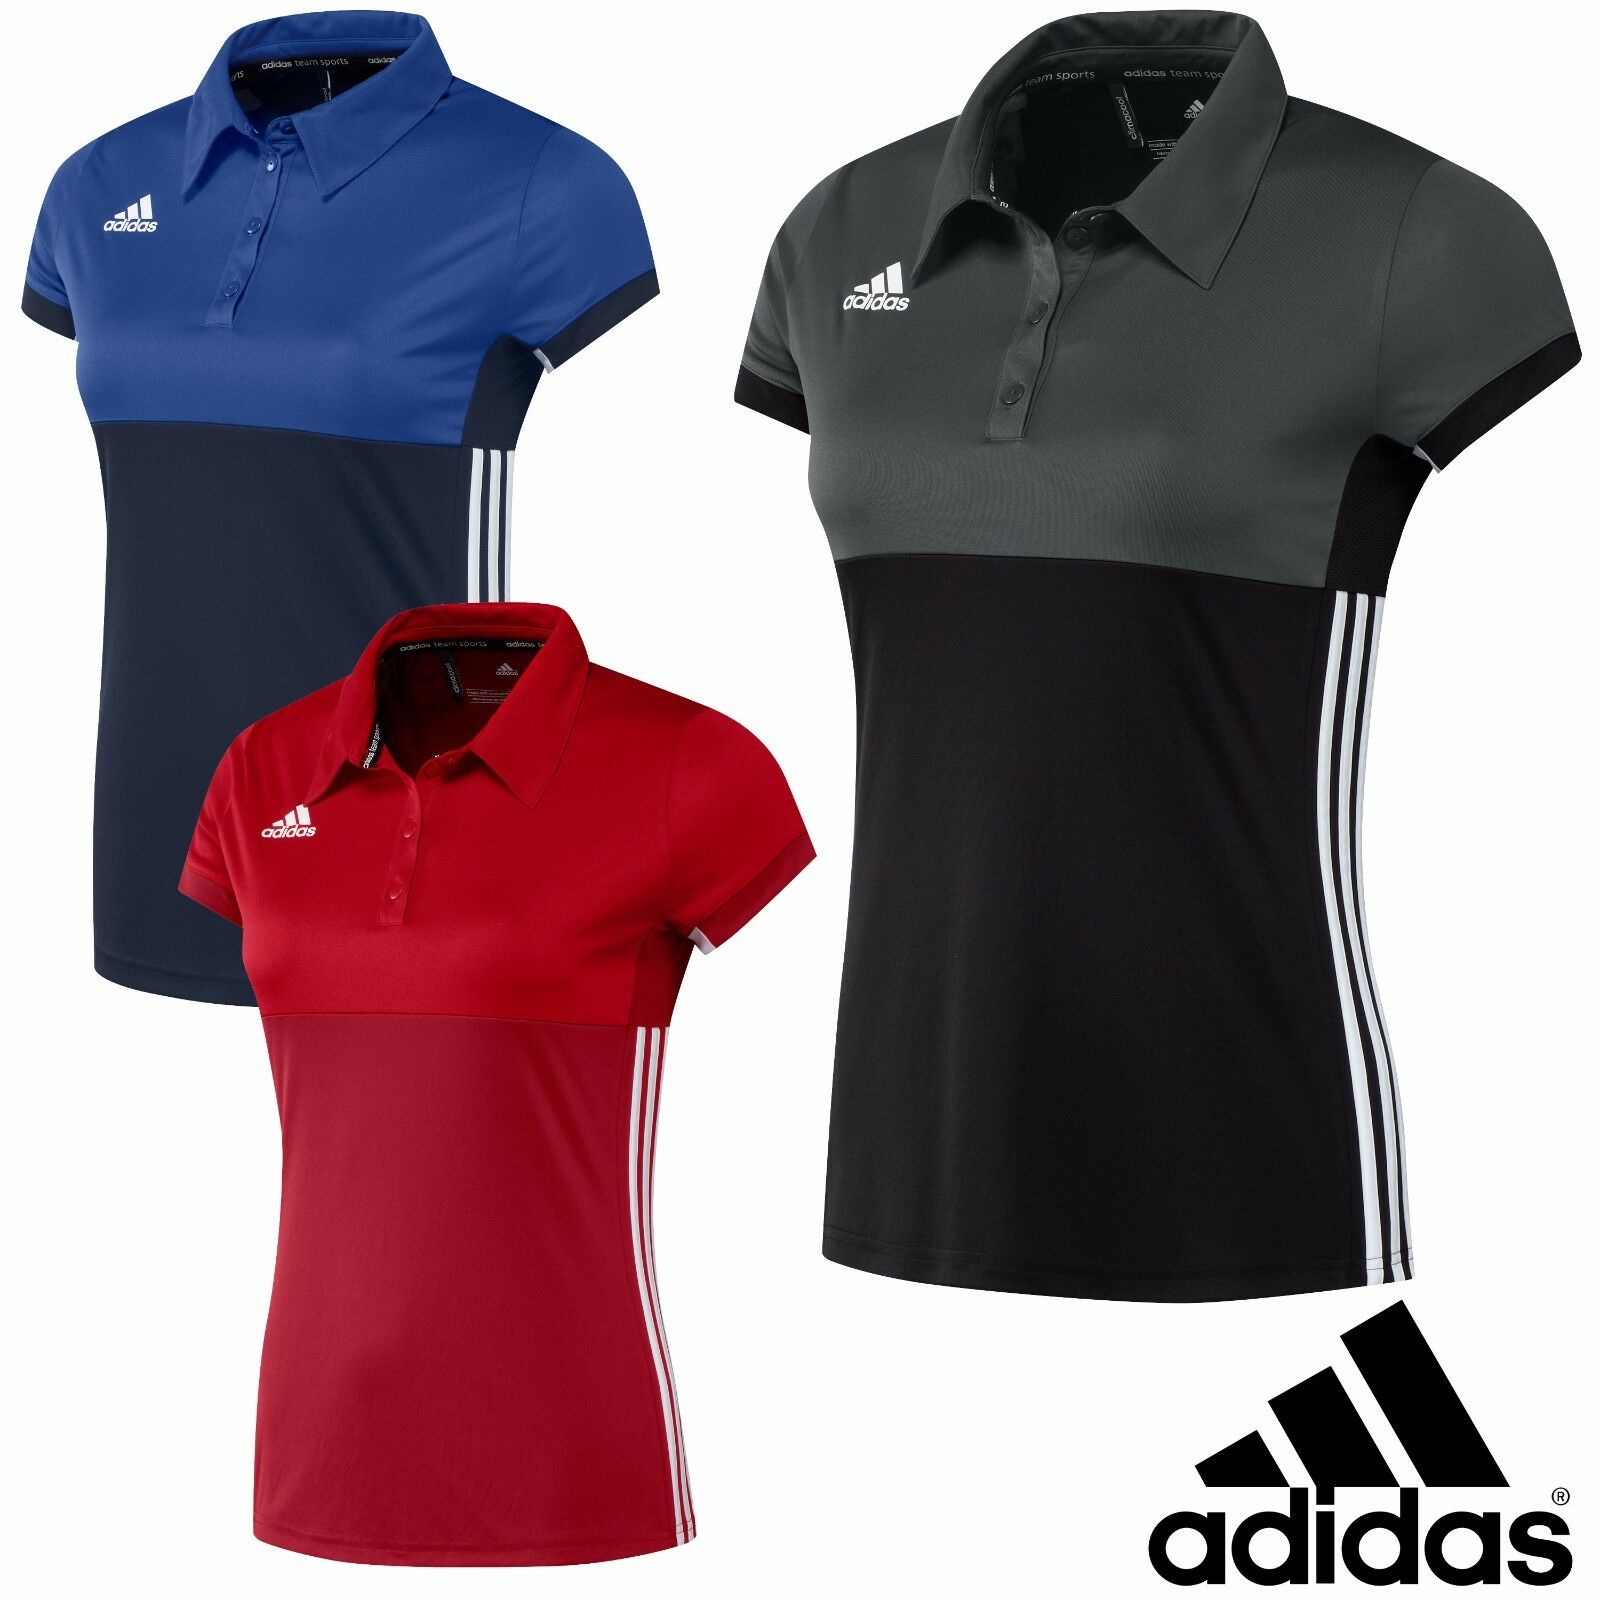 finest selection de69f 82b00 Details about adidas Ladies T16 Sports Polo Shirt Climacool Gym Running  Womens T-Shirt Top